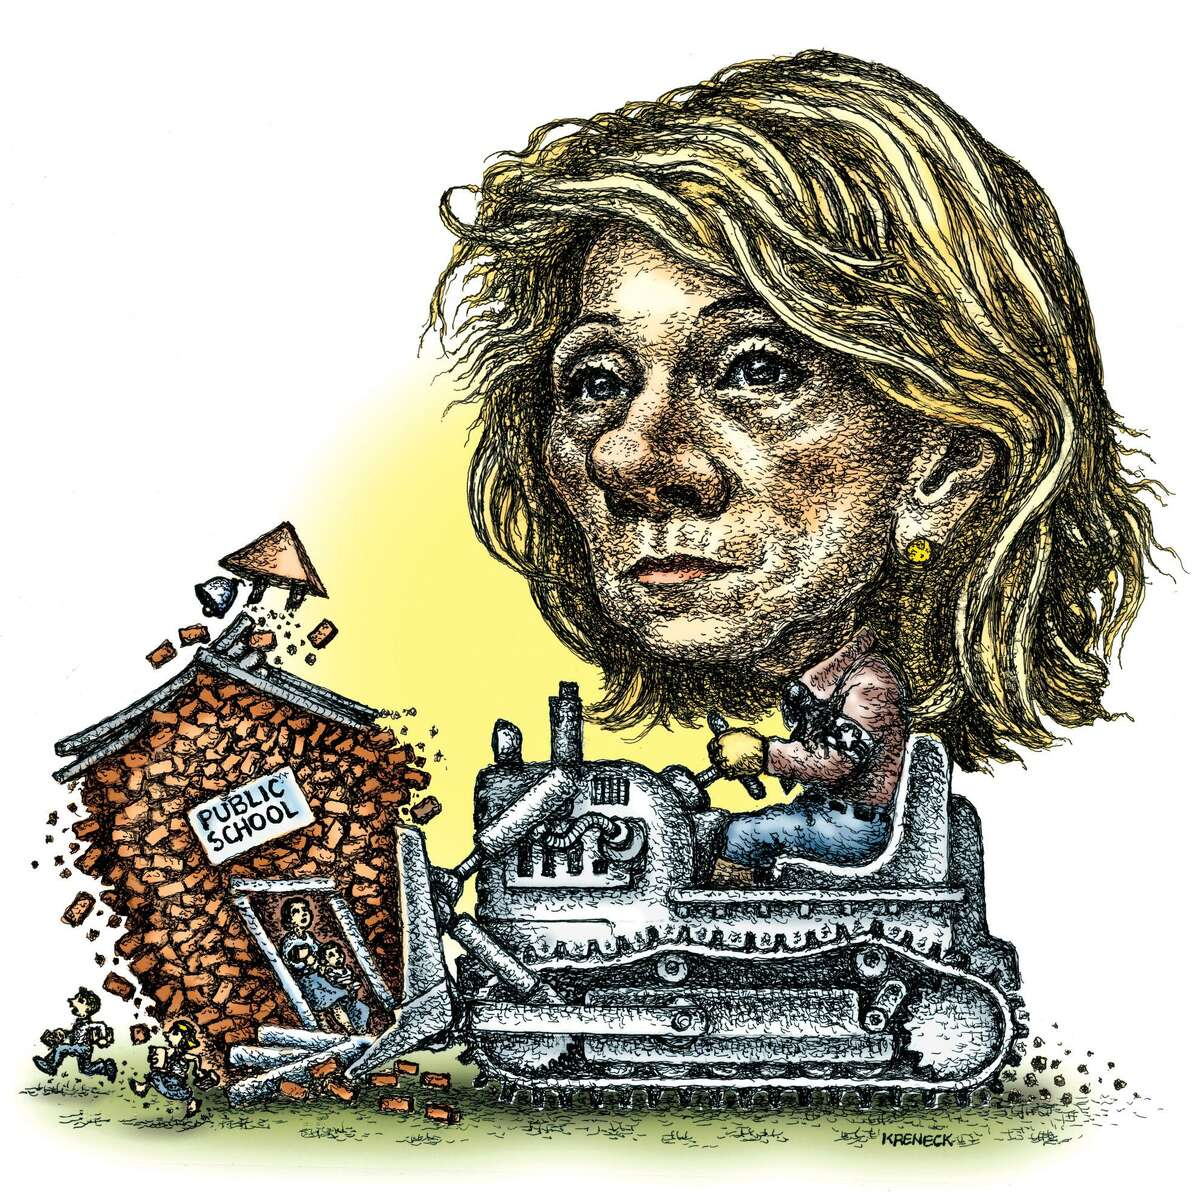 This artwork by Kevin Kreneck refers to Betsy DeVos and how she might change and influence the Department of Education.